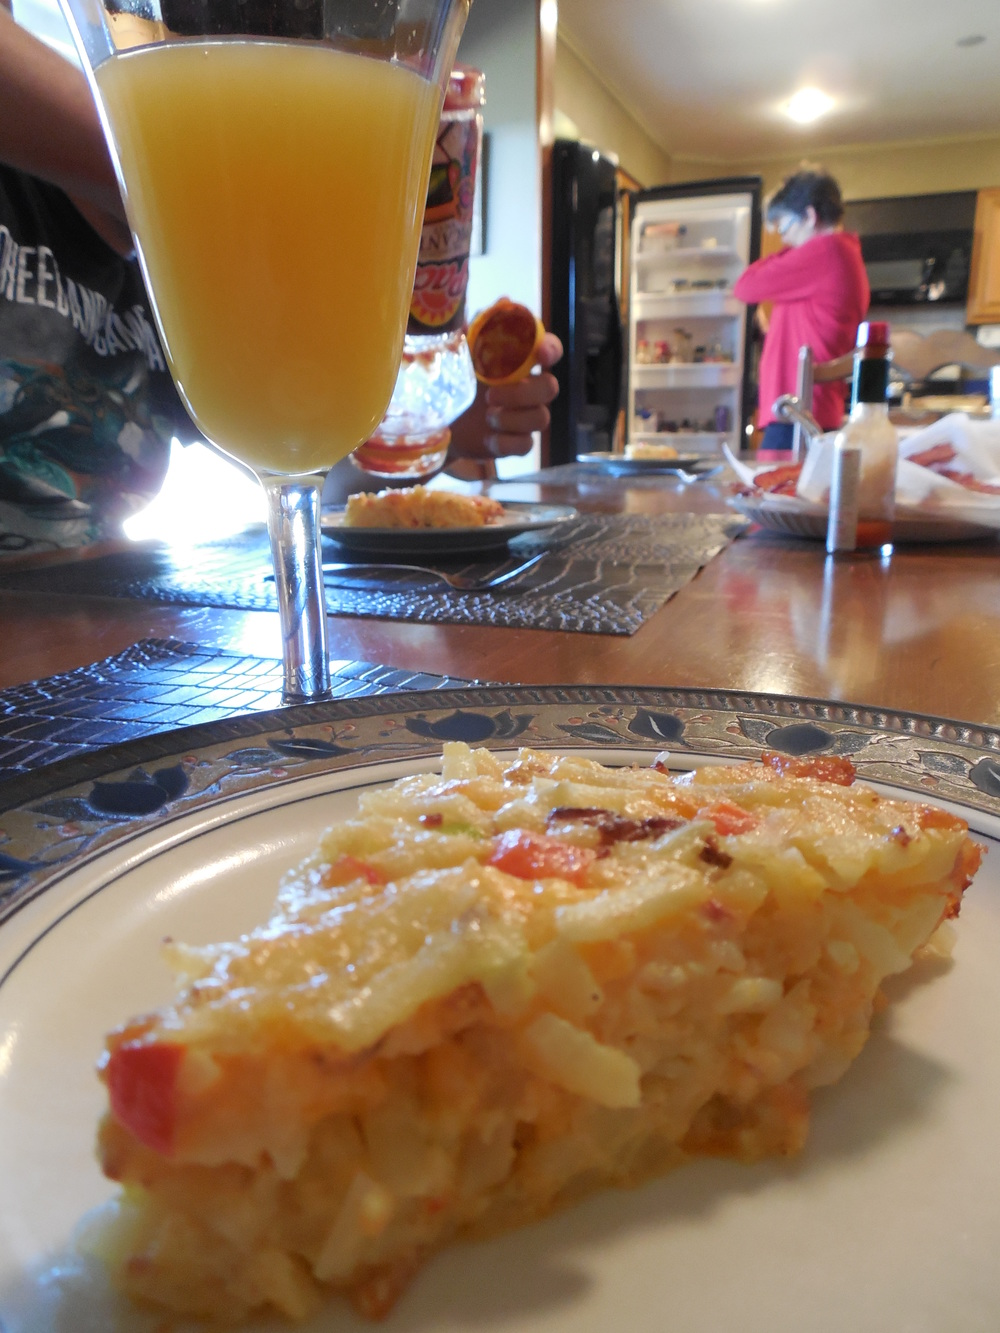 Each year it seems to be made a bit differently, but always tastes amazing! This year it included hash browns, bacon bits, a variety of peppers and of course egg!!!! Have a slice with salsa and your mimosa and your holiday will be complete!.....oh and with family :)